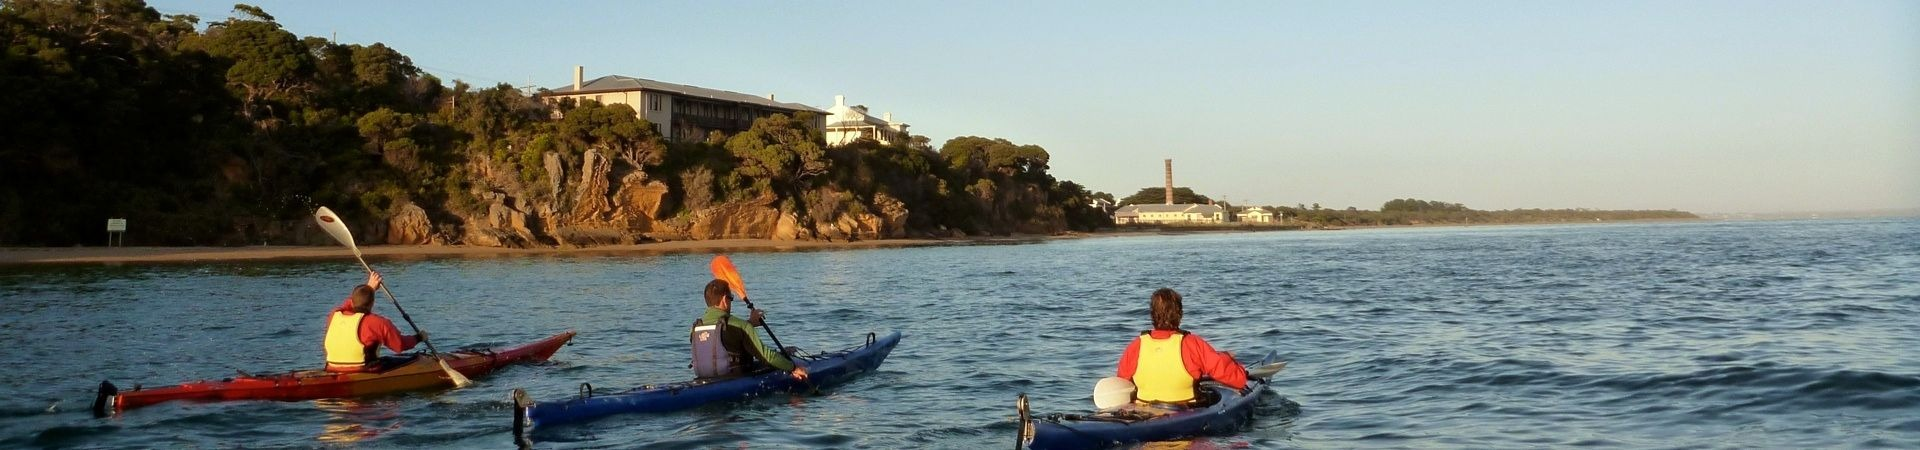 Kayak - Point Nepean 39 - 1920x450